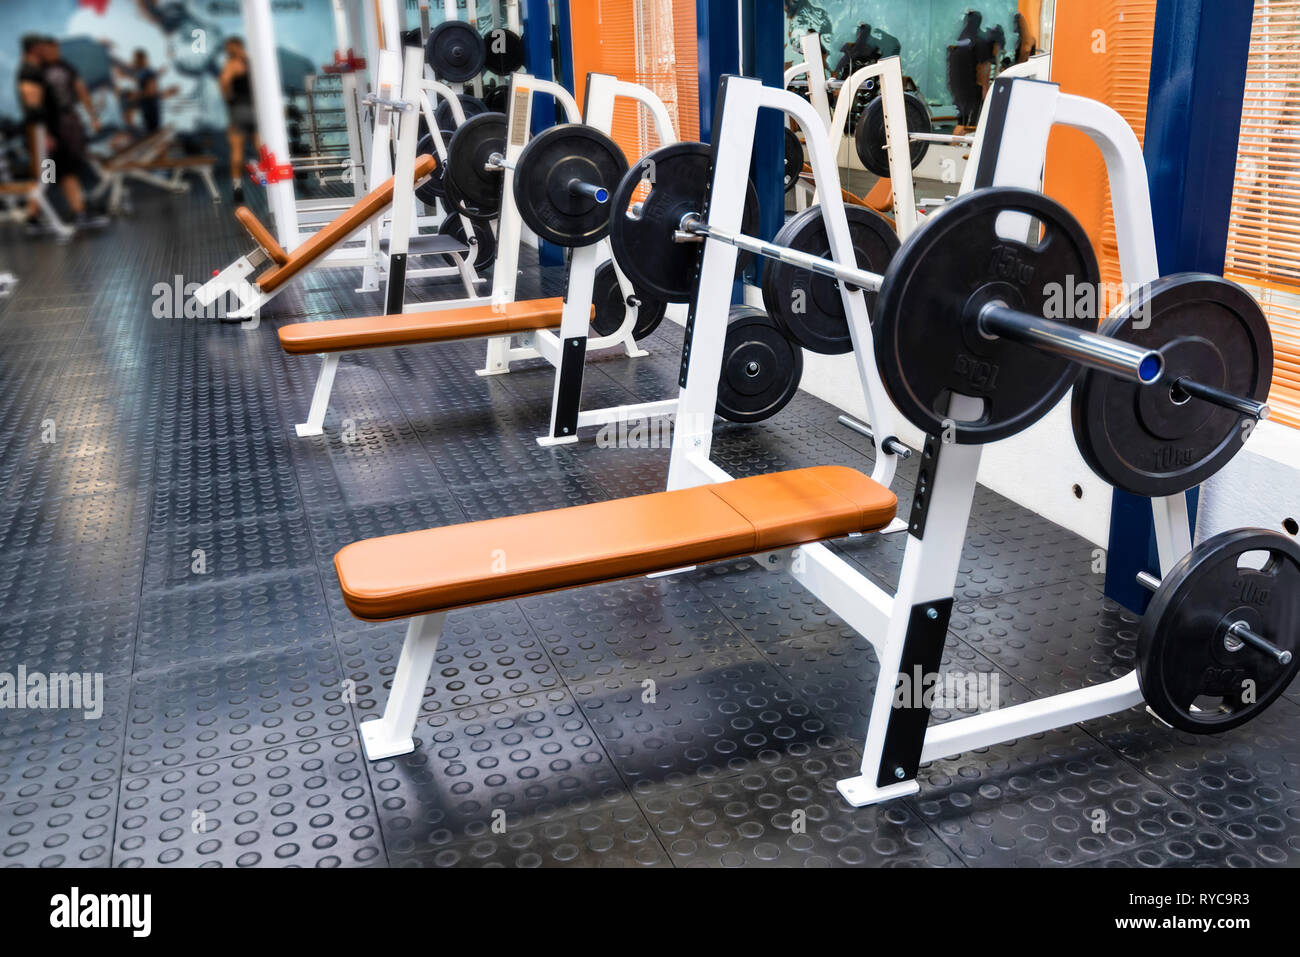 Empty bench press exercise machine in modern gym - Stock Image